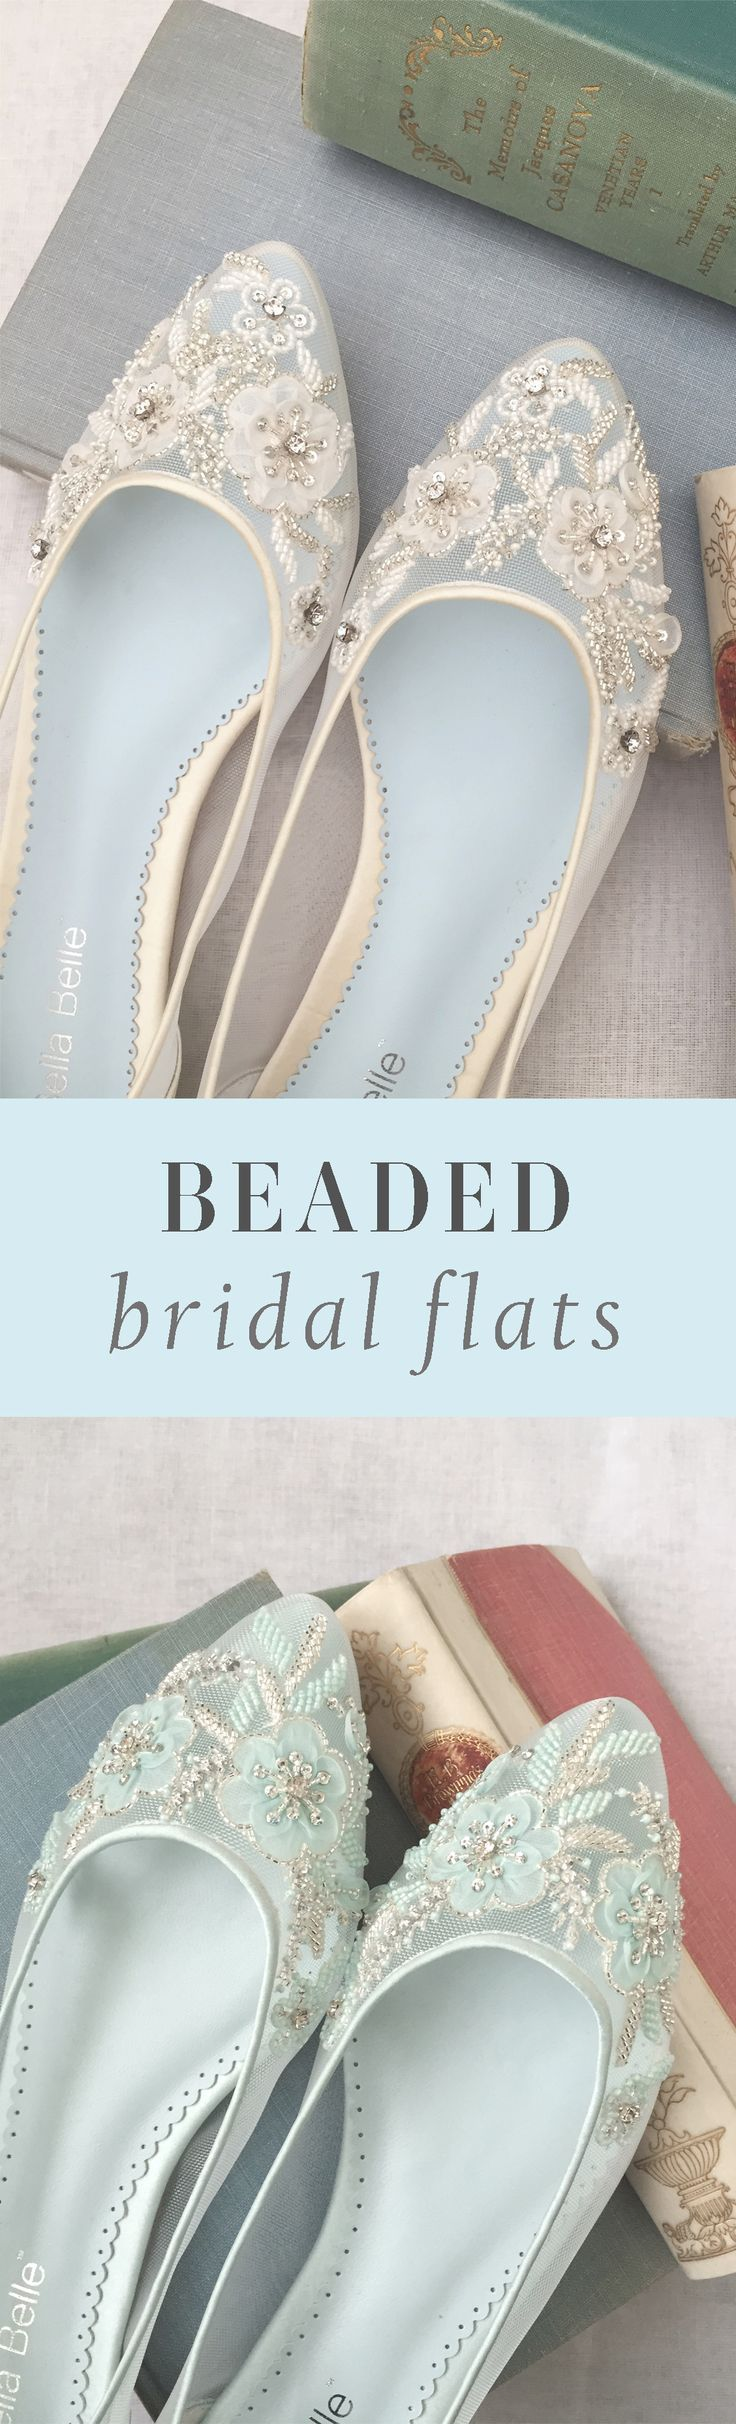 Bella Belle Glamorous Beaded Bridal Flats - Shop comfortable and pretty wedding flats #flats